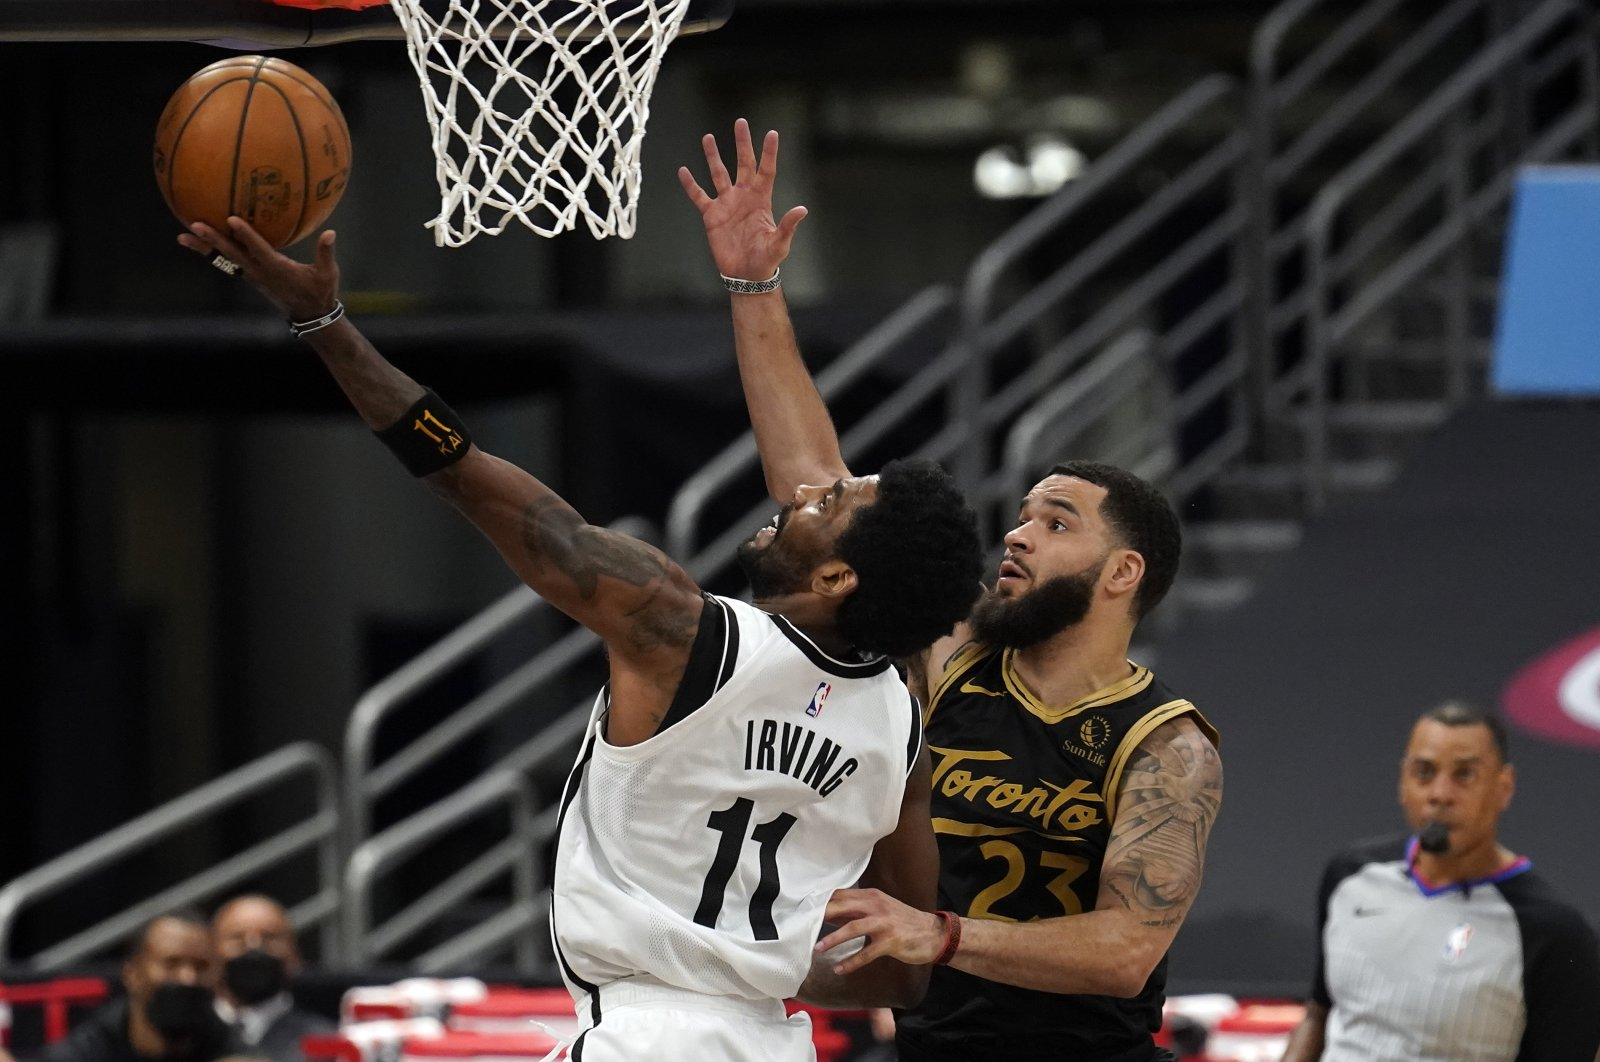 Brooklyn Nets guard Kyrie Irving (L) goes up for a shot in front of Toronto Raptors guard Fred VanVleet during an NBA game, April 27, 2021, in Tampa, Florida, U.S. (AP Photo)